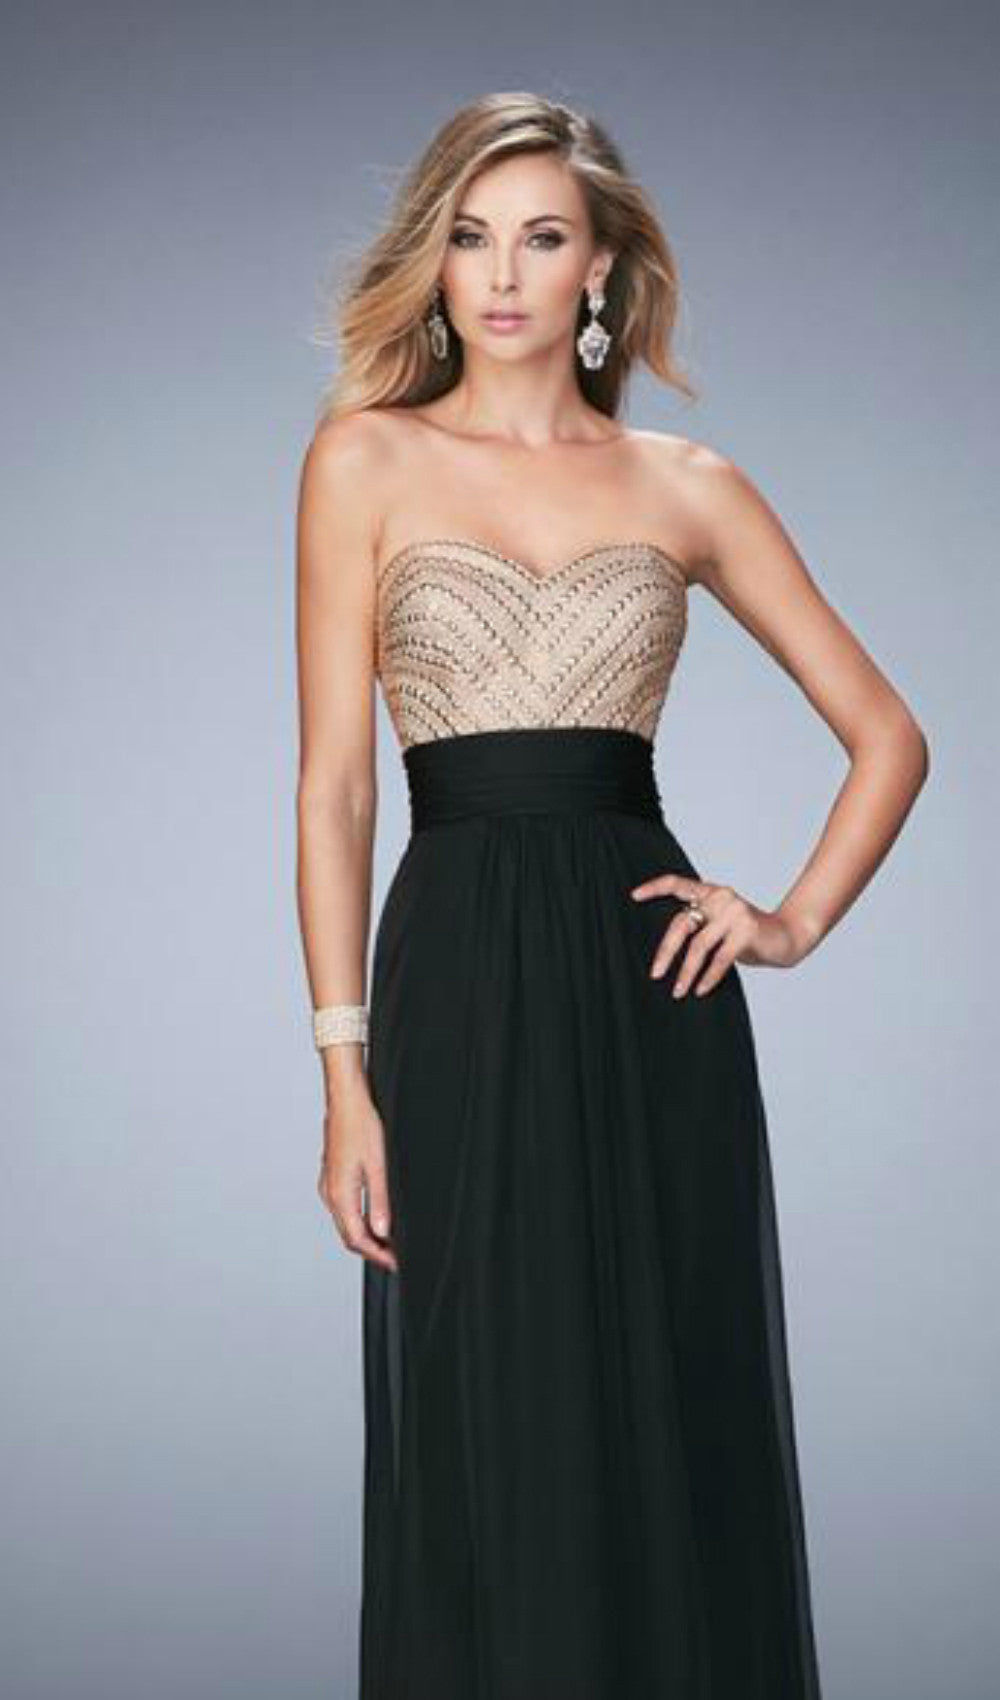 Black & Gold Chiffon Prom Dress from Schaffer\'s in Des Moines ...